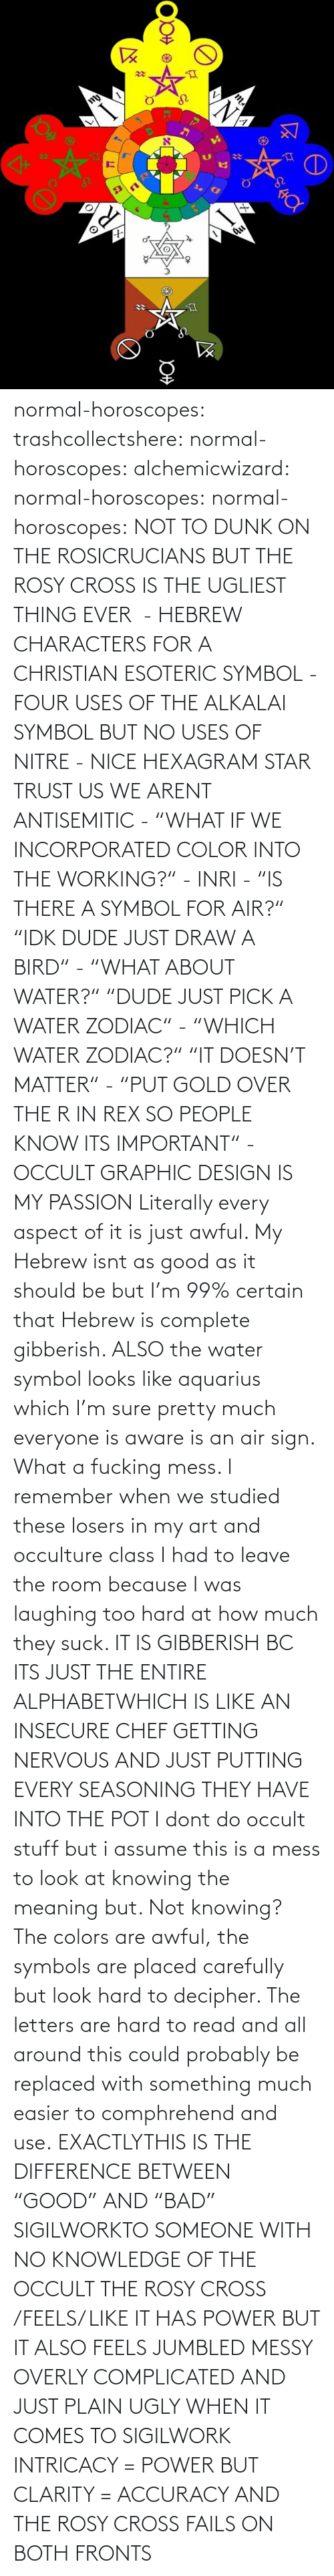 "I Dont: normal-horoscopes:  trashcollectshere: normal-horoscopes:   alchemicwizard:  normal-horoscopes:  normal-horoscopes: NOT TO DUNK ON THE ROSICRUCIANS BUT THE ROSY CROSS IS THE UGLIEST THING EVER  - HEBREW CHARACTERS FOR A CHRISTIAN ESOTERIC SYMBOL - FOUR USES OF THE ALKALAI SYMBOL BUT NO USES OF NITRE - NICE HEXAGRAM STAR TRUST US WE ARENT ANTISEMITIC - ""WHAT IF WE INCORPORATED COLOR INTO THE WORKING?"" - INRI - ""IS THERE A SYMBOL FOR AIR?"" ""IDK DUDE JUST DRAW A BIRD"" - ""WHAT ABOUT WATER?"" ""DUDE JUST PICK A WATER ZODIAC"" - ""WHICH WATER ZODIAC?"" ""IT DOESN'T MATTER"" - ""PUT GOLD OVER THE R IN REX SO PEOPLE KNOW ITS IMPORTANT"" - OCCULT GRAPHIC DESIGN IS MY PASSION  Literally every aspect of it is just awful. My Hebrew isnt as good as it should be but I'm 99% certain that Hebrew is complete gibberish.  ALSO the water symbol looks like aquarius which I'm sure pretty much everyone is aware is an air sign. What a fucking mess.  I remember when we studied these losers in my art and occulture class I had to leave the room because I was laughing too hard at how much they suck.   IT IS GIBBERISH BC ITS JUST THE ENTIRE ALPHABETWHICH IS LIKE AN INSECURE CHEF GETTING NERVOUS AND JUST PUTTING EVERY SEASONING THEY HAVE INTO THE POT     I dont do occult stuff but i assume this is a mess to look at knowing the meaning but. Not knowing? The colors are awful, the symbols are placed carefully but look hard to decipher. The letters are hard to read and all around this could probably be replaced with something much easier to comphrehend and use.  EXACTLYTHIS IS THE DIFFERENCE BETWEEN ""GOOD"" AND ""BAD"" SIGILWORKTO SOMEONE WITH NO KNOWLEDGE OF THE OCCULT THE ROSY CROSS /FEELS/ LIKE IT HAS POWER BUT IT ALSO FEELS JUMBLED MESSY OVERLY COMPLICATED AND JUST PLAIN UGLY WHEN IT COMES TO SIGILWORK INTRICACY = POWER BUT CLARITY = ACCURACY AND THE ROSY CROSS FAILS ON BOTH FRONTS"